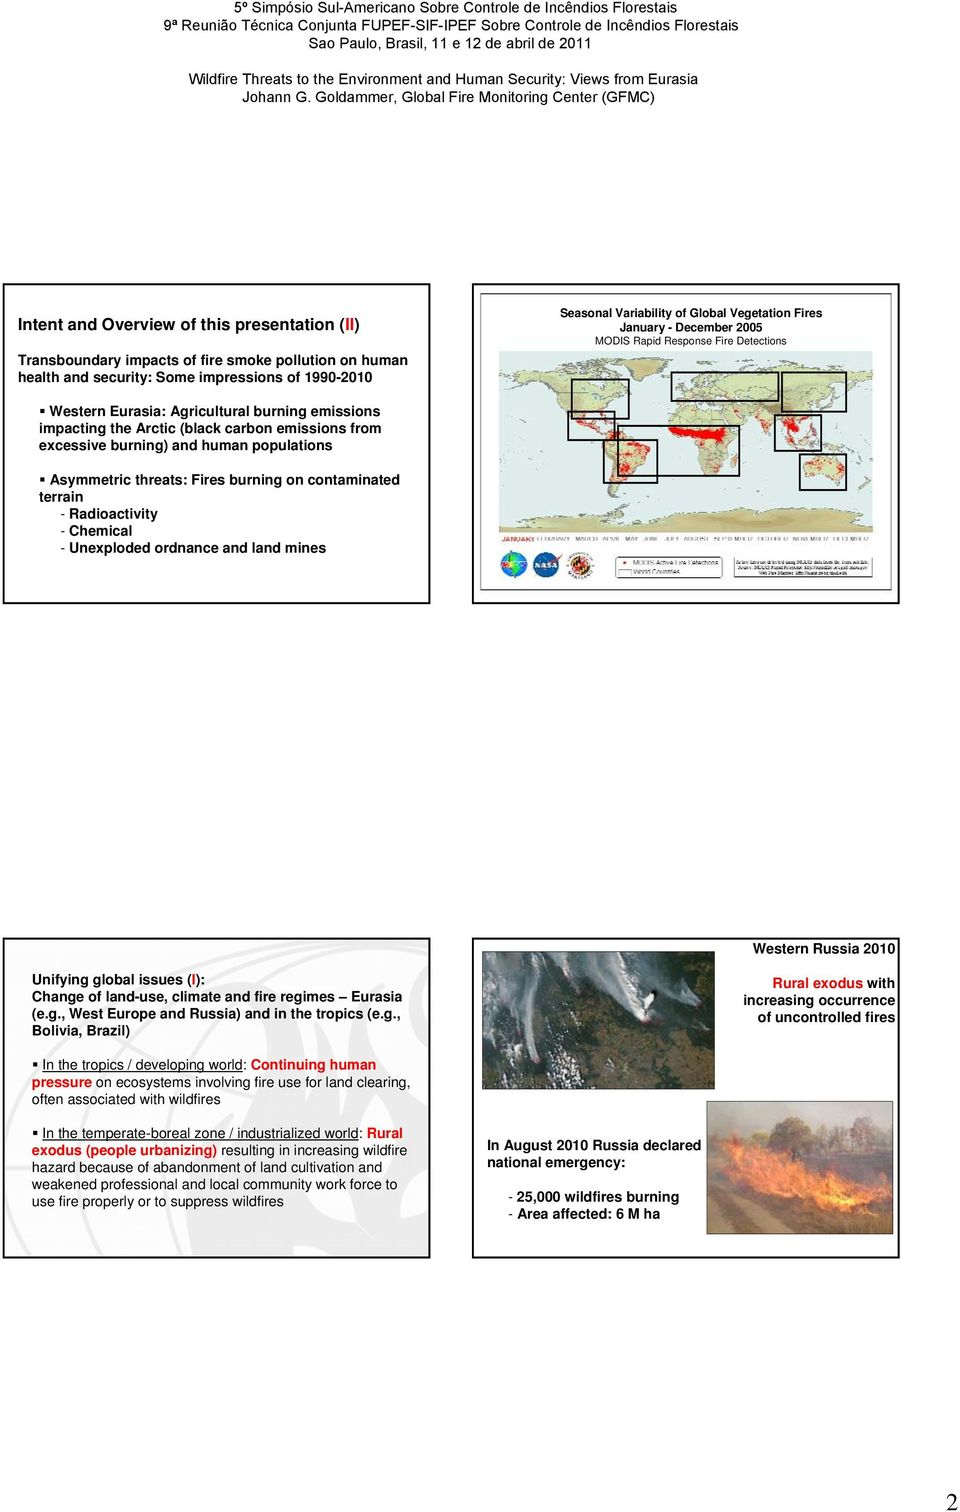 Asymmetric threats: Fires burning on contaminated terrain - Radioactivity - Chemical - Unexploded ordnance and land mines Western Russia 2010 Unifying global issues (I): Change of land-use, climate